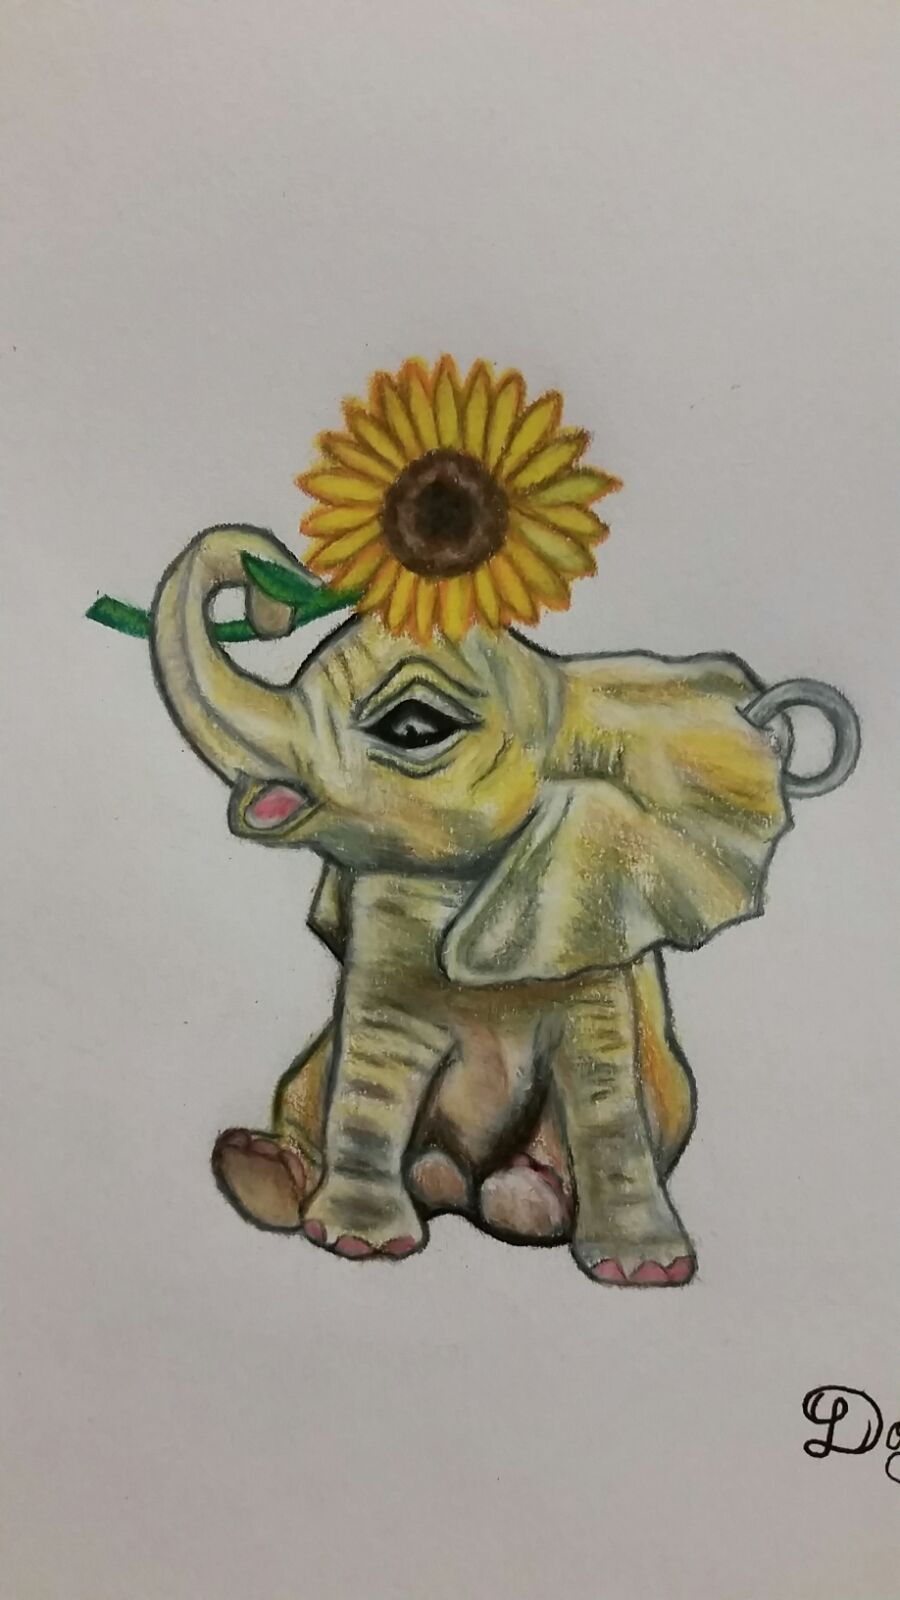 Original Drawing In Glass Frame 5x7in Baby Elephant Holding